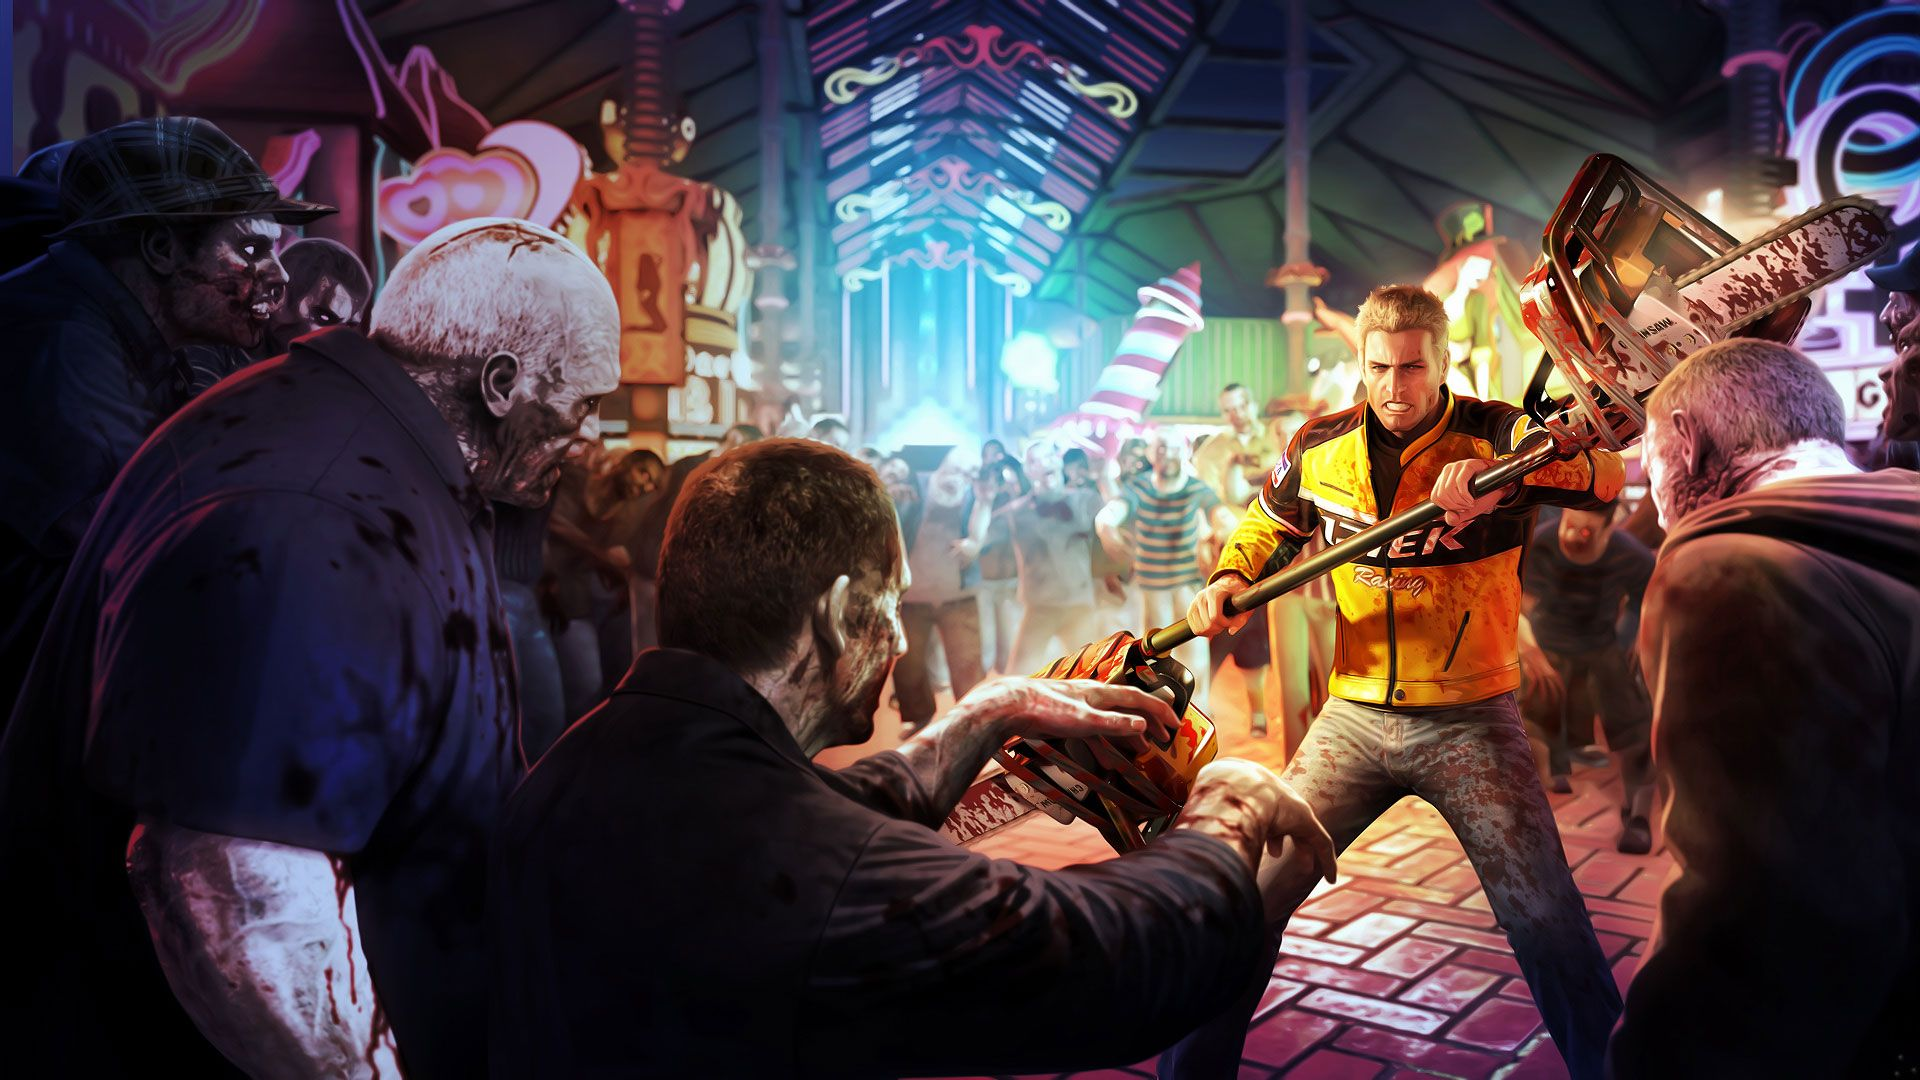 Collection of Dead Rising Wallpaper on HDWallpapers